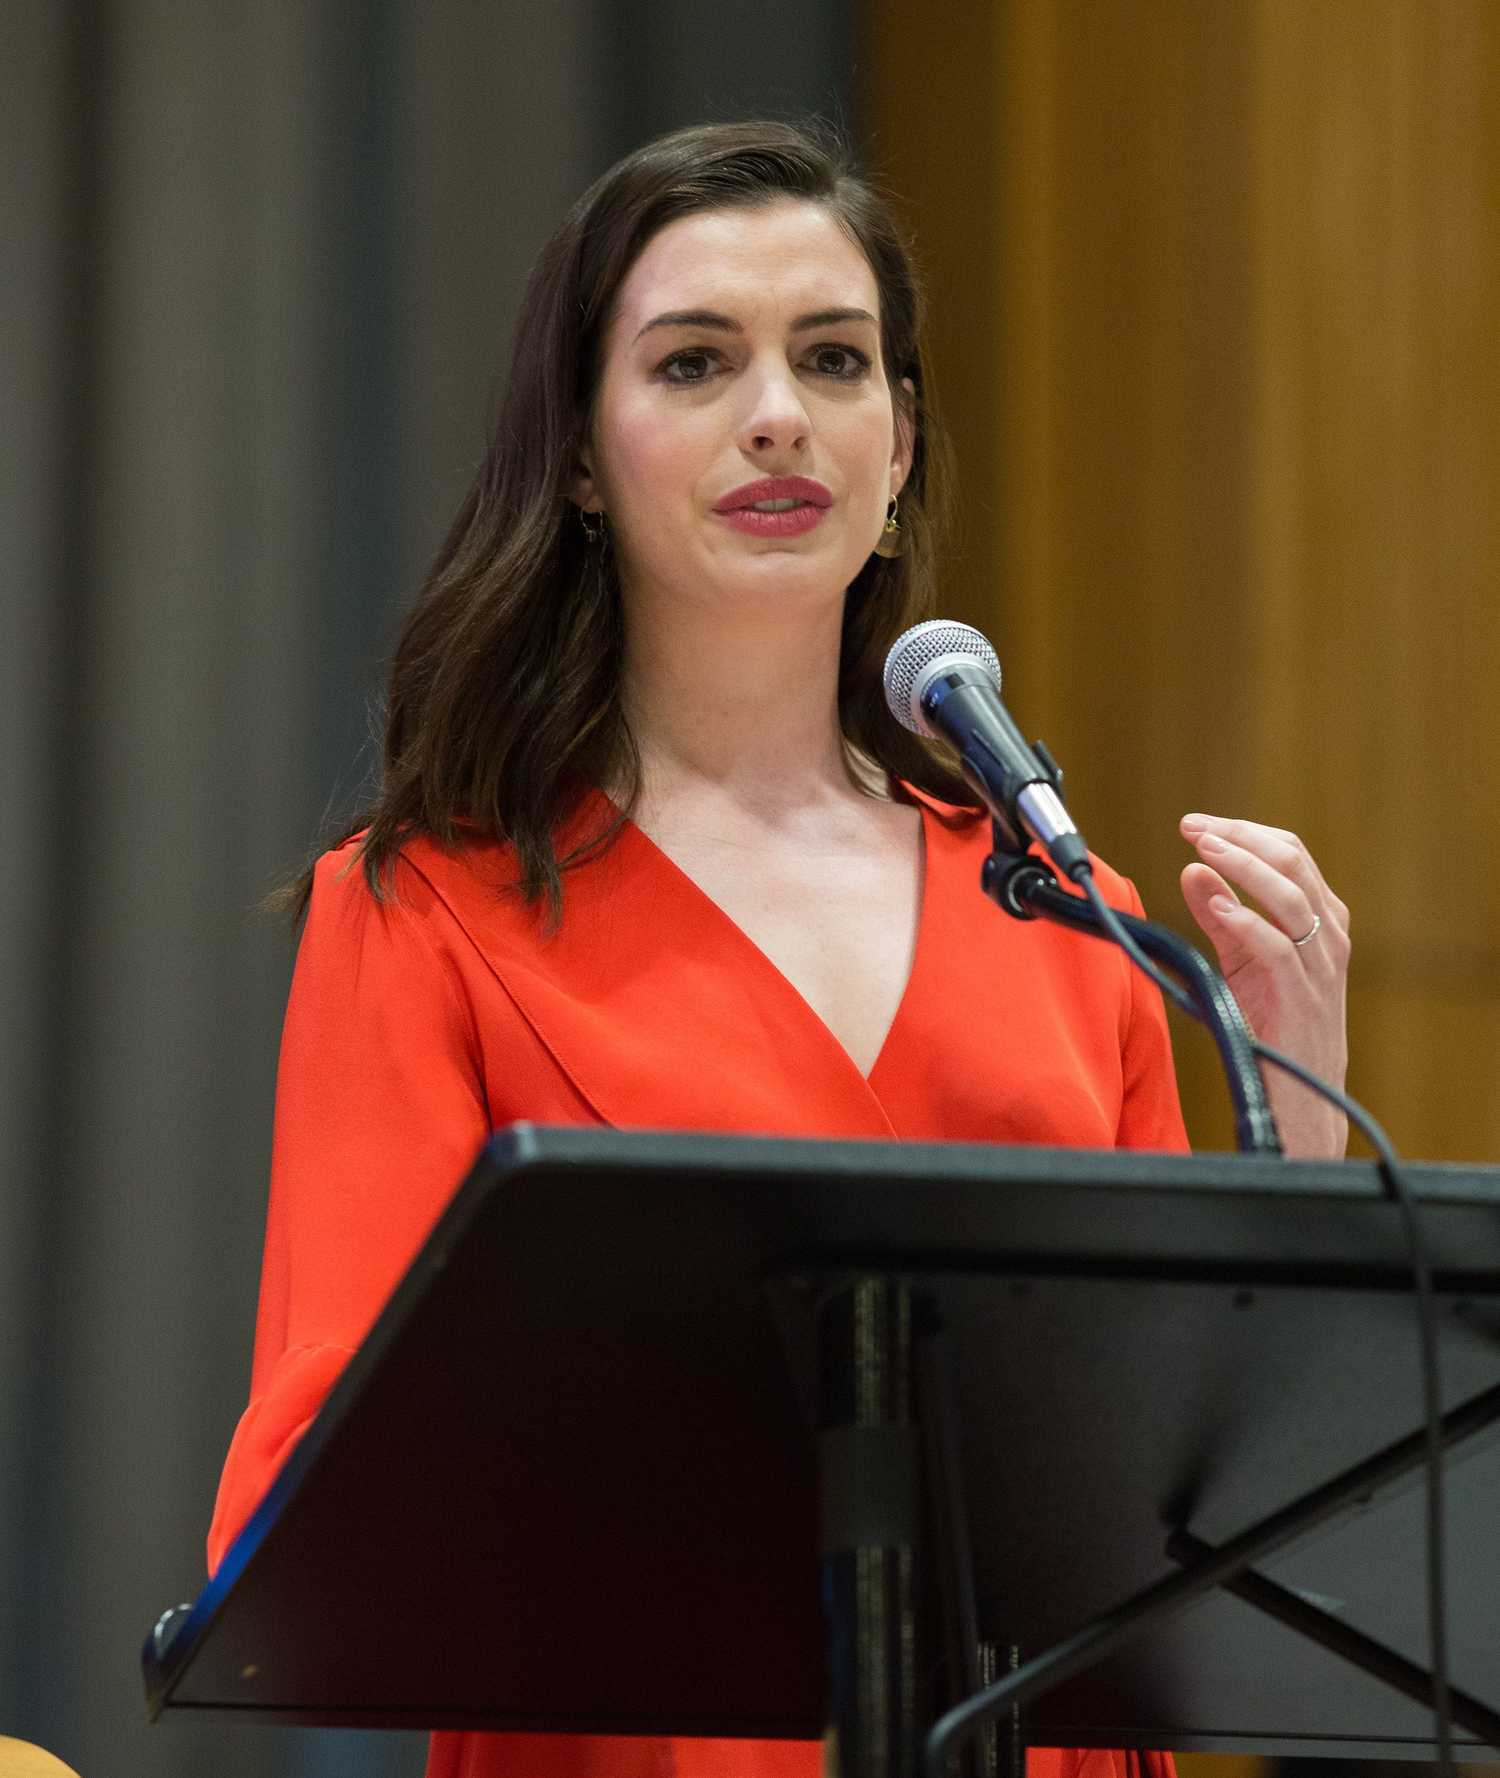 Anne Hathaway At International Women's Day At United